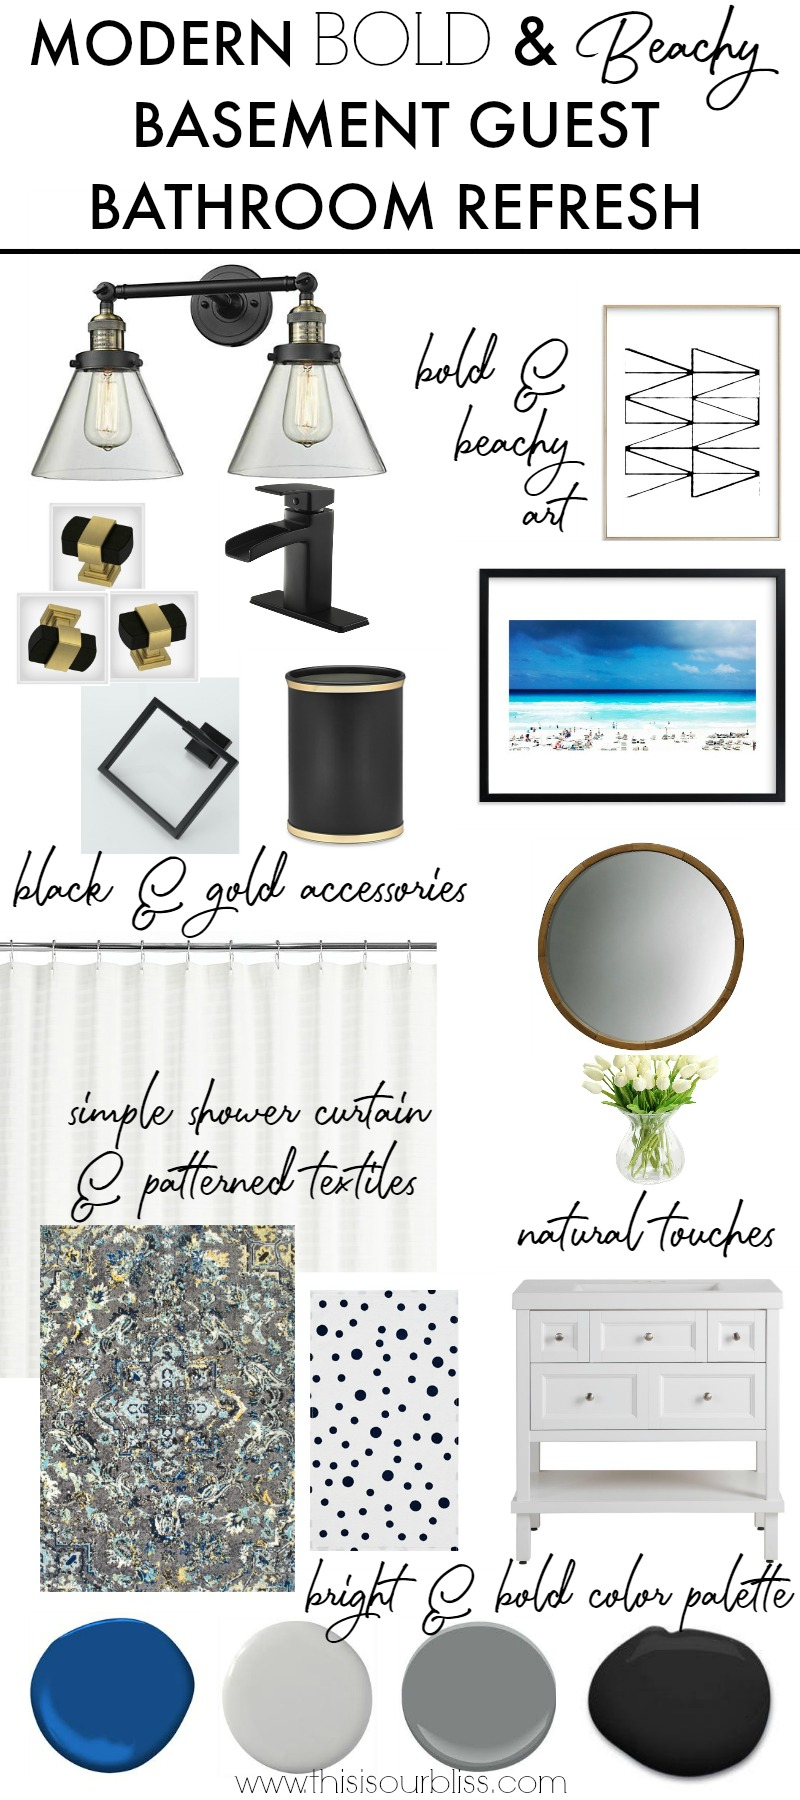 Modern Bold & Beachy Basement Guest Bathroom Refresh - Primp and Pamper Bathroom Challenge - This is our Bliss